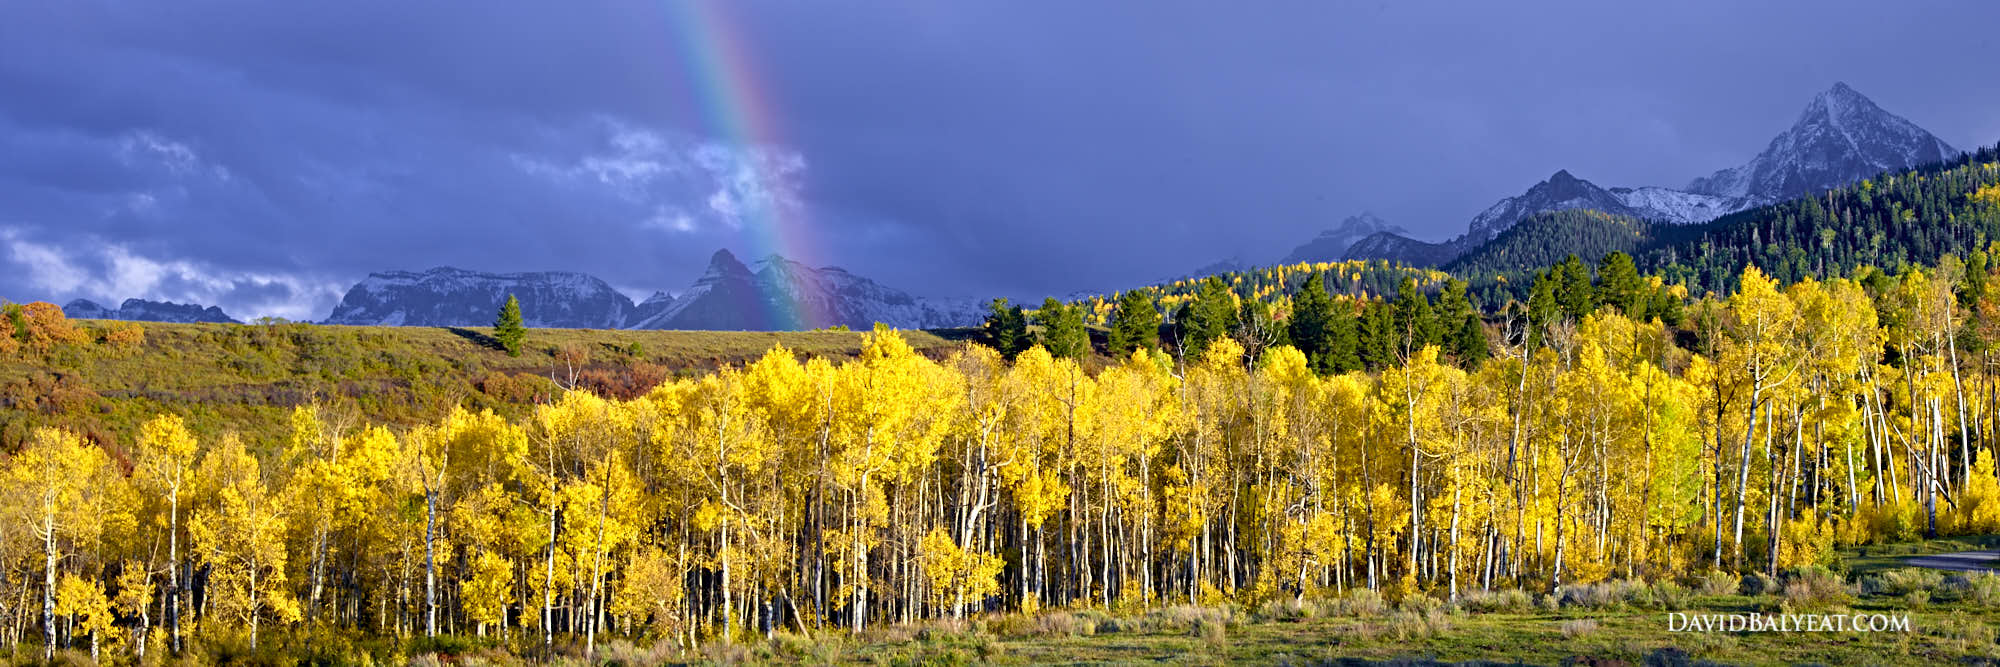 End of the Rainbow Aspen trees Colorado Mountain scene high-definition HD professional landscape photography